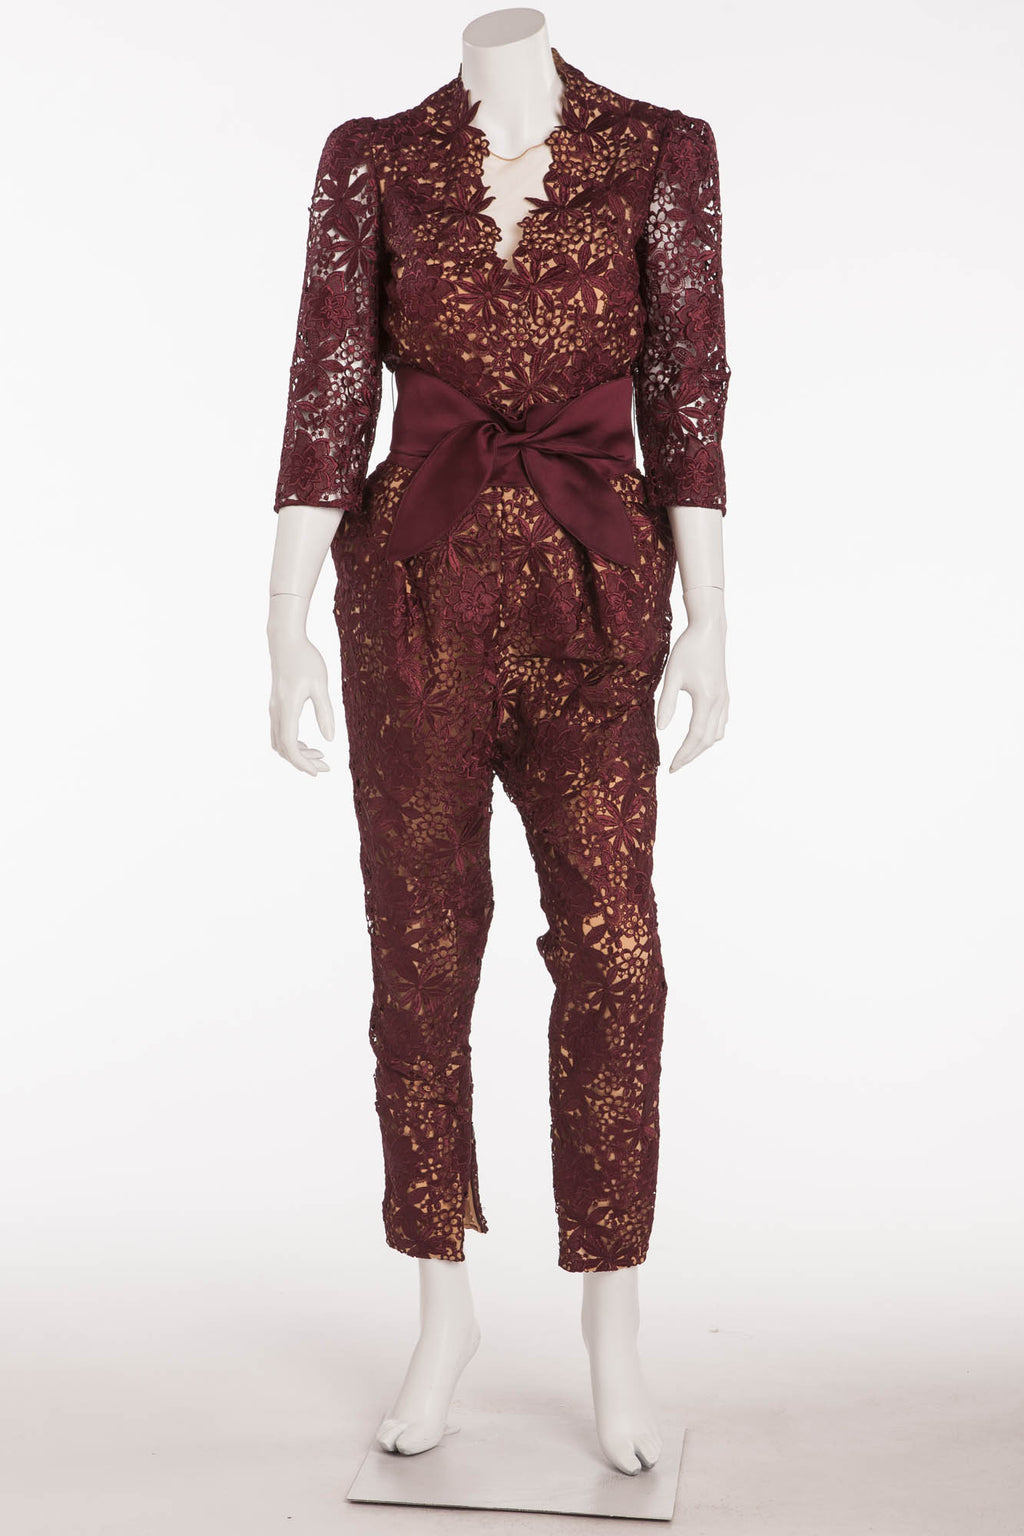 Stella McCartney - Burgundy Lace Jumpsuit with Belt -IT 42